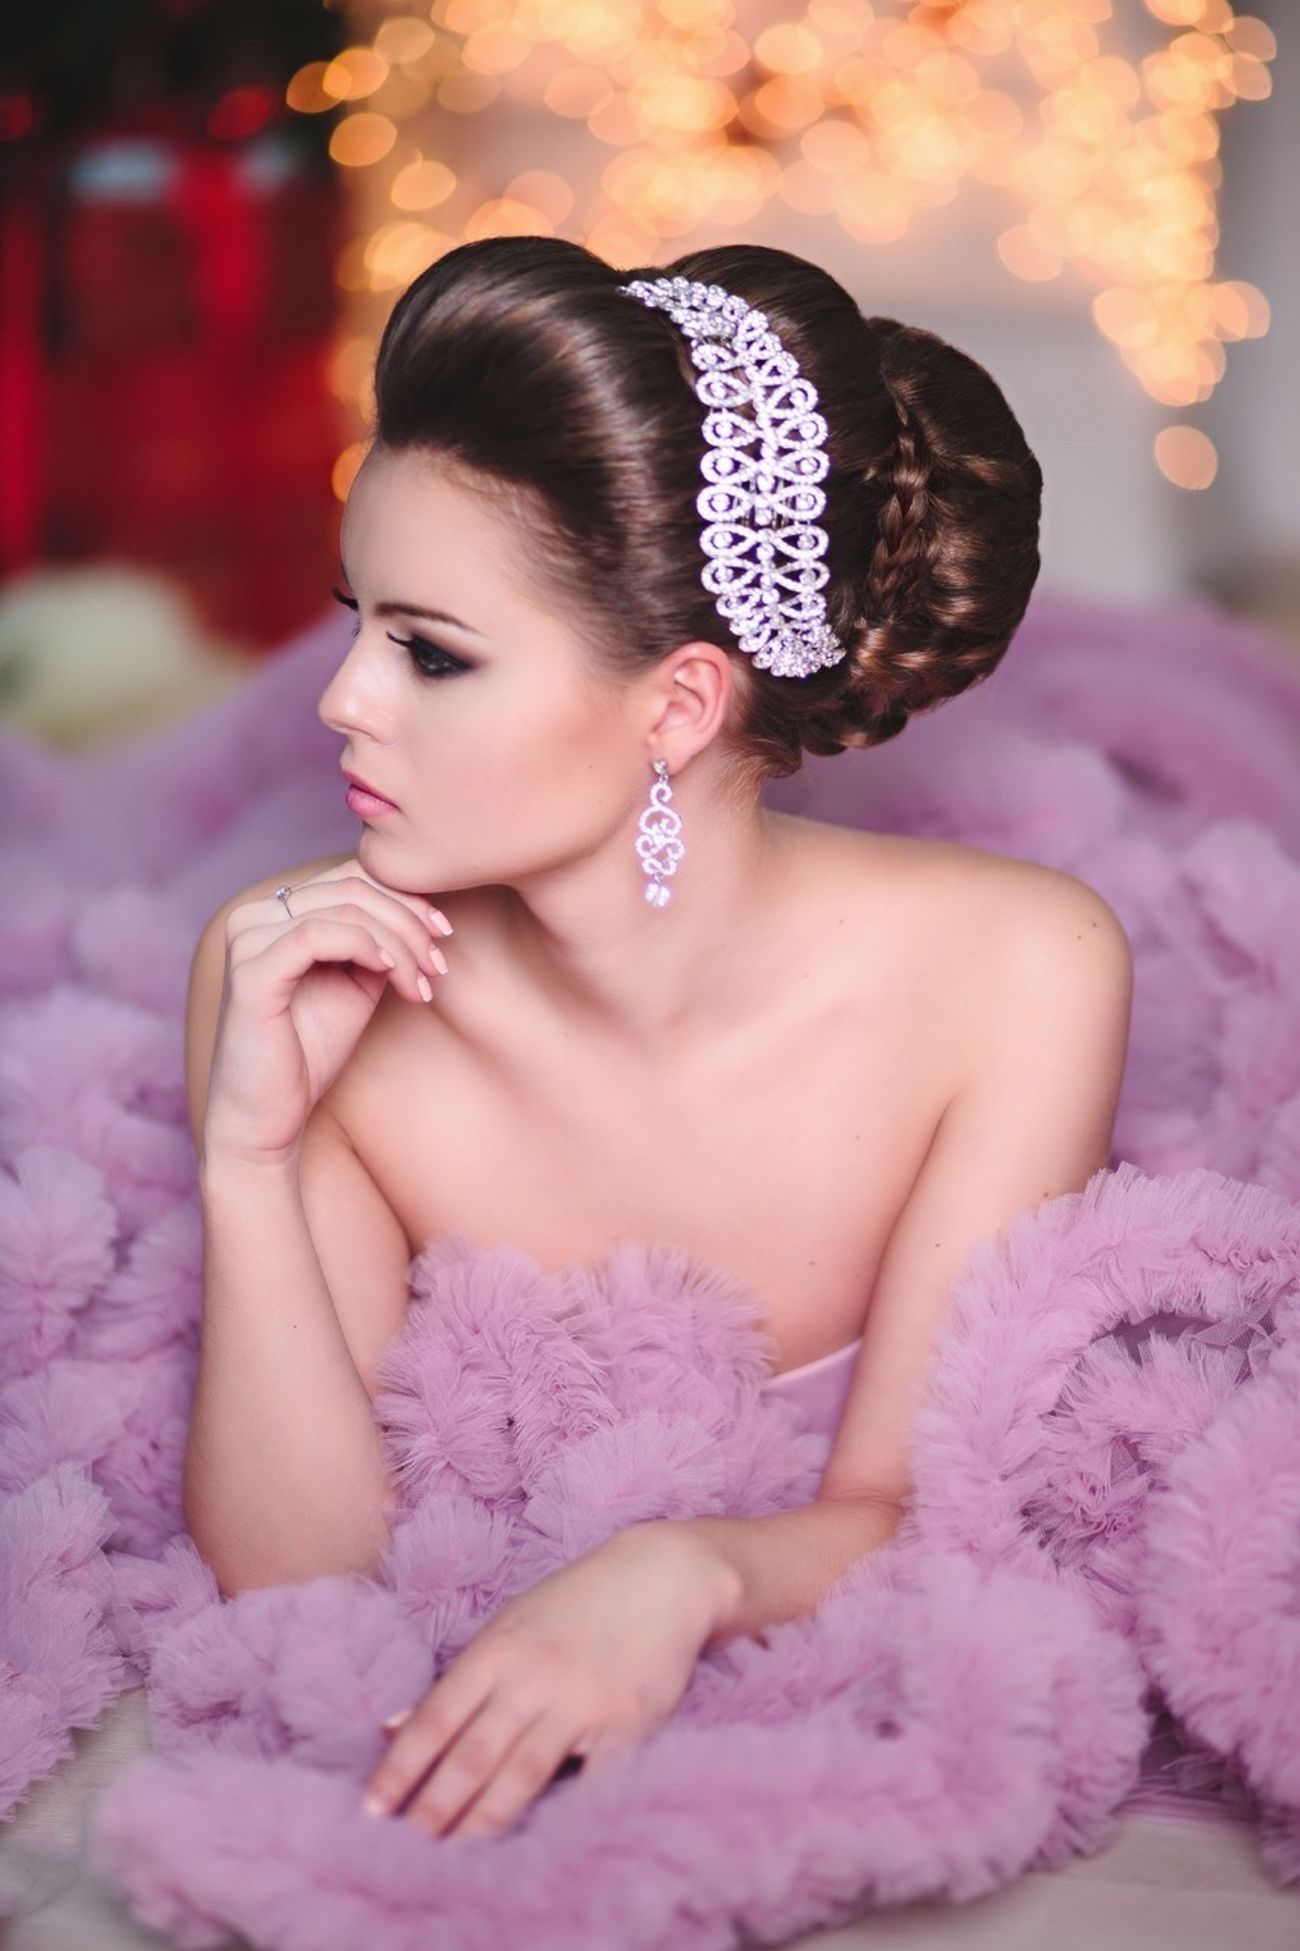 Fashion Hair Weddinghair Long Hair Wedding2015 Weddingdetails Pretty Girl Hairstyle Hairdresser Happy Wedding Novia2015